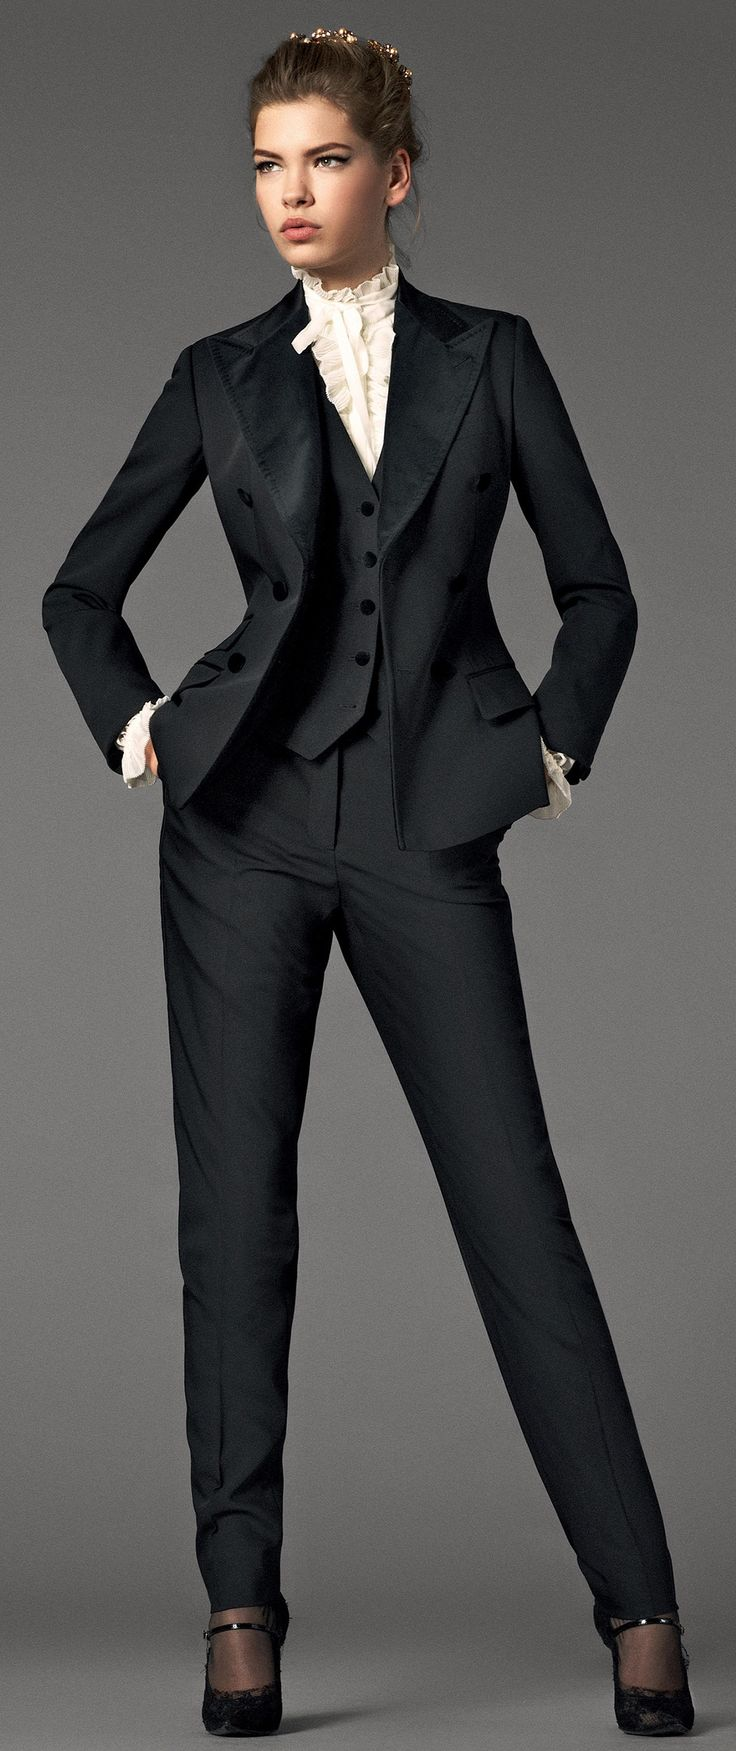 Love woman suits!!! I Want a dapper pants lady suit badly. #shopforit